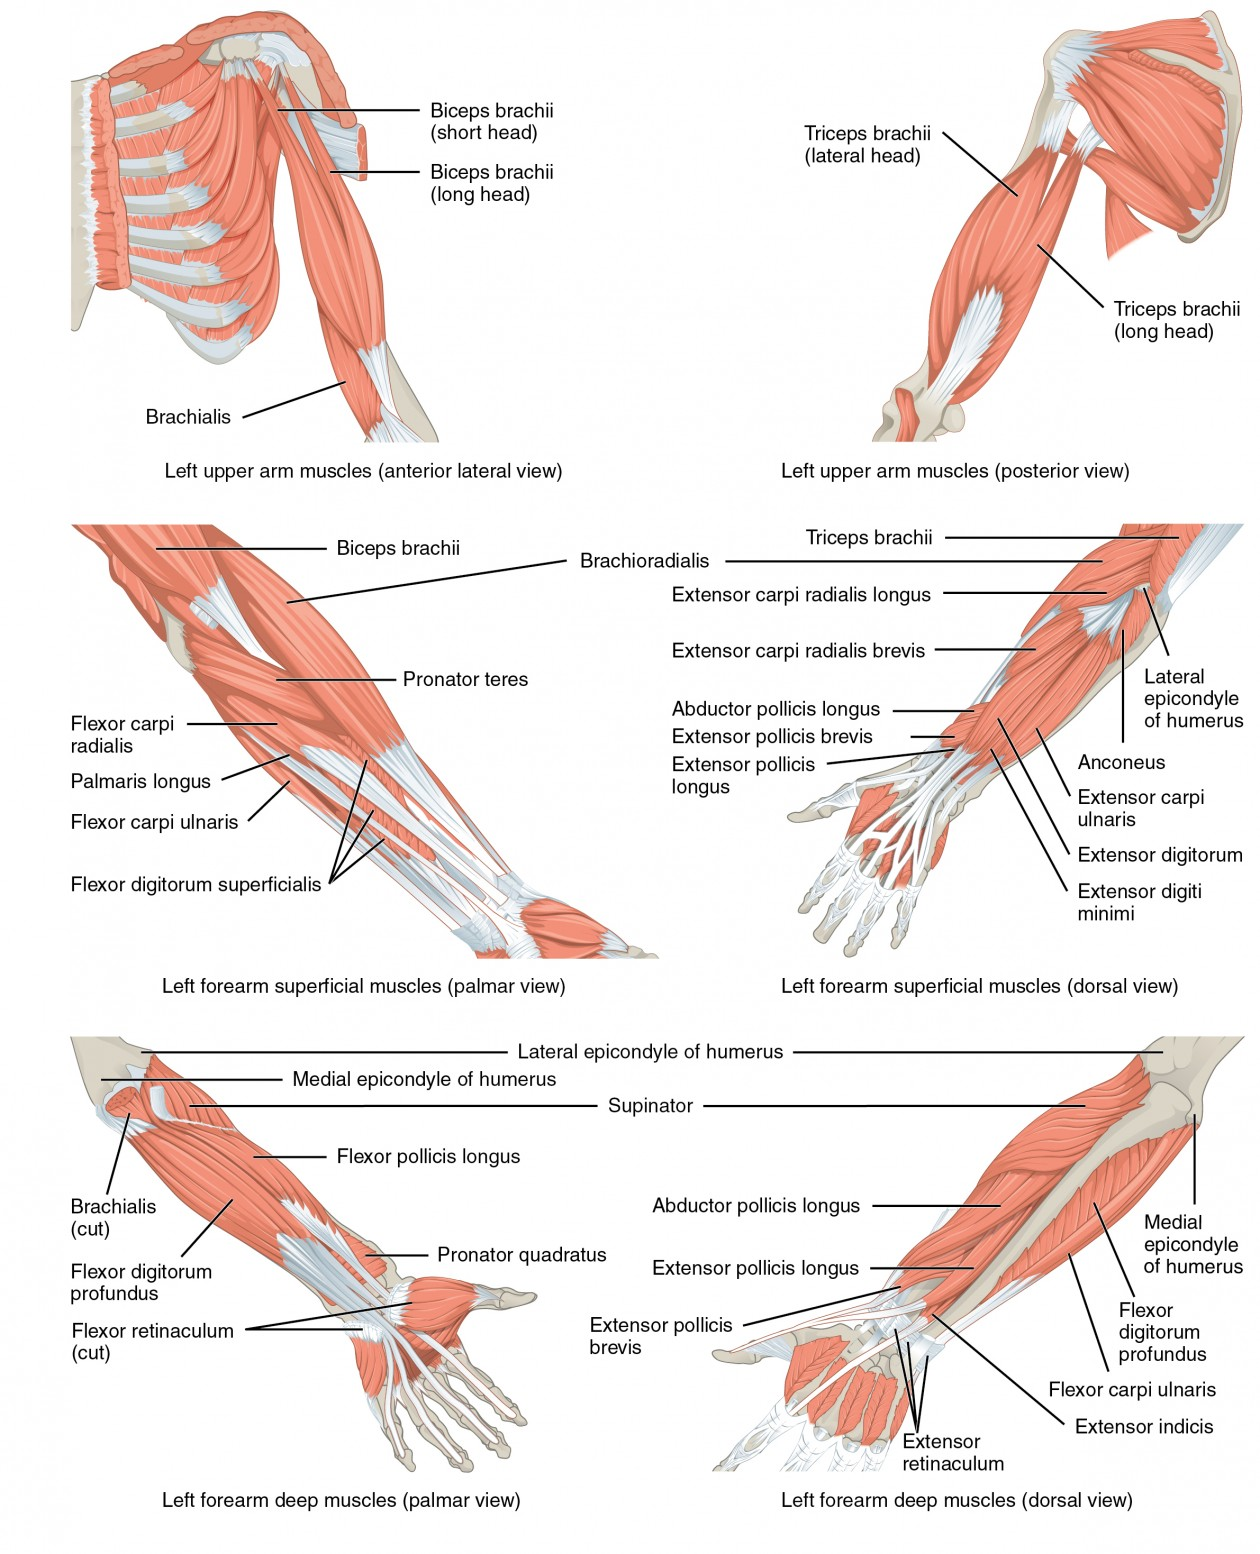 palmar hand muscle anatomy diagram wiring electric guitar muscles of the pectoral girdle and upper limbs this multipart figure shows different that move forearm major groups